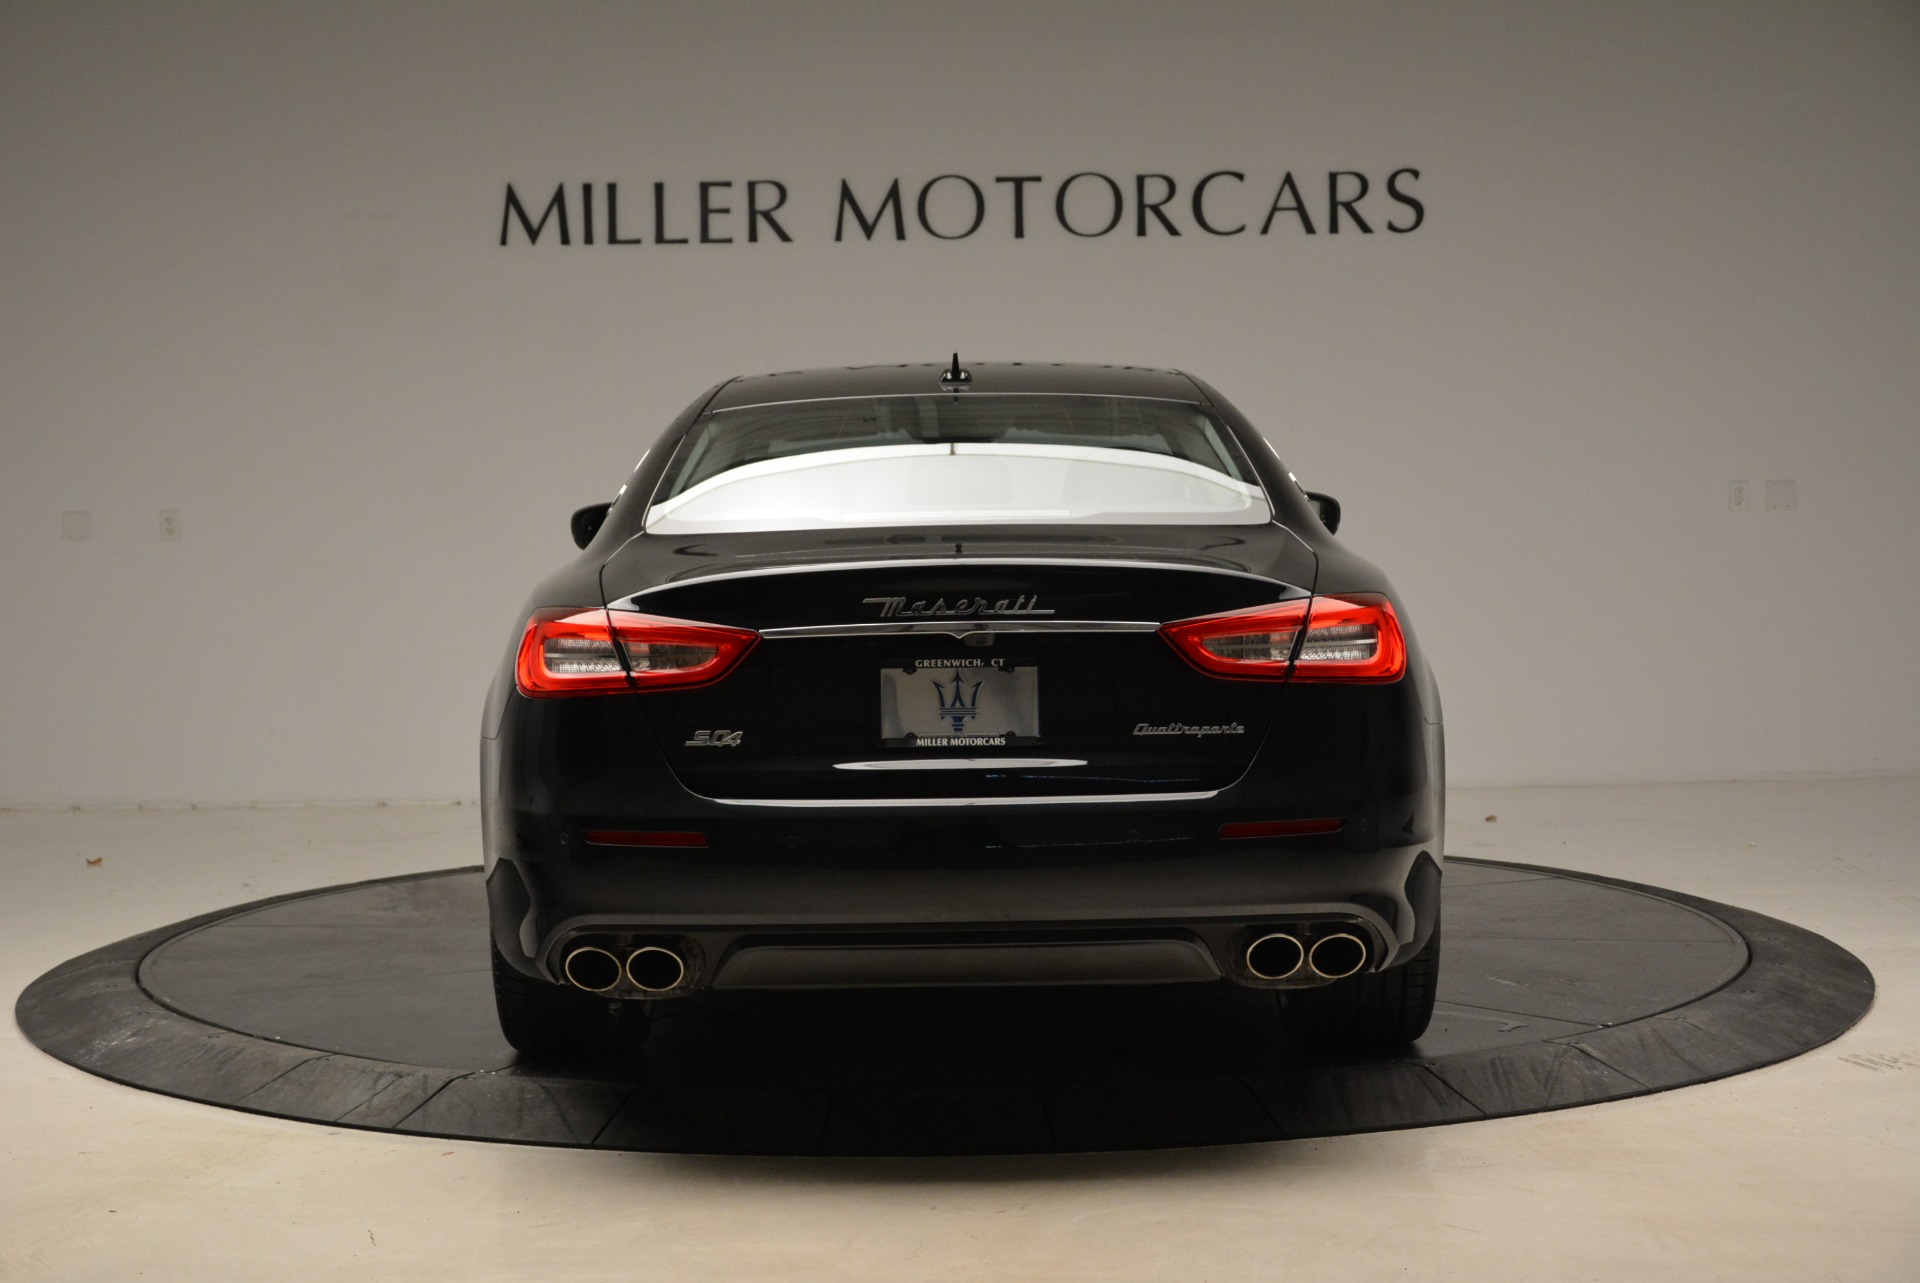 New 2018 Maserati Quattroporte S Q4 GranLusso For Sale In Greenwich, CT 1705_p6